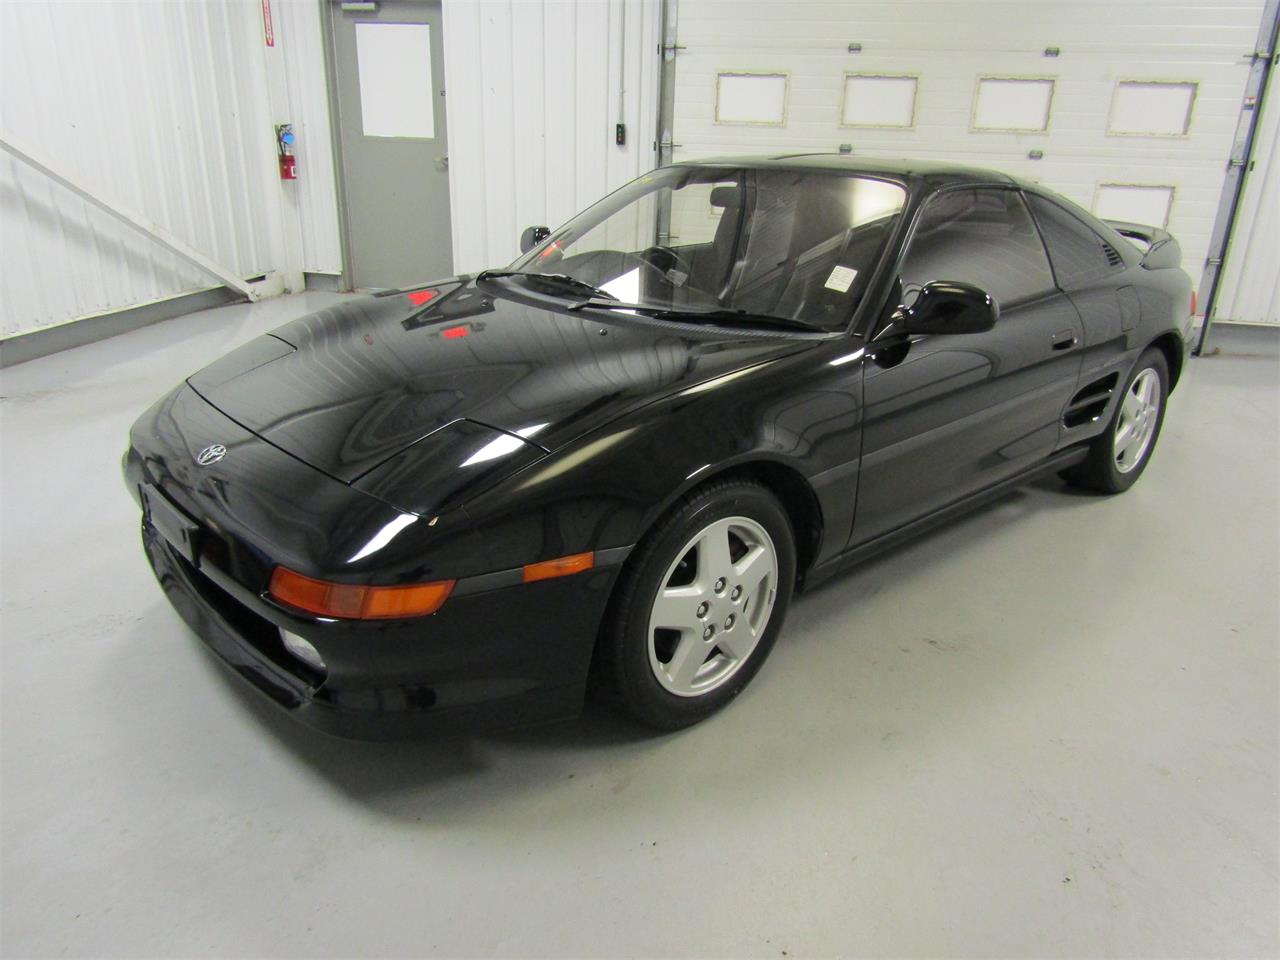 Large Picture of 1992 Toyota MR2 located in Virginia - $16,991.00 - OLED